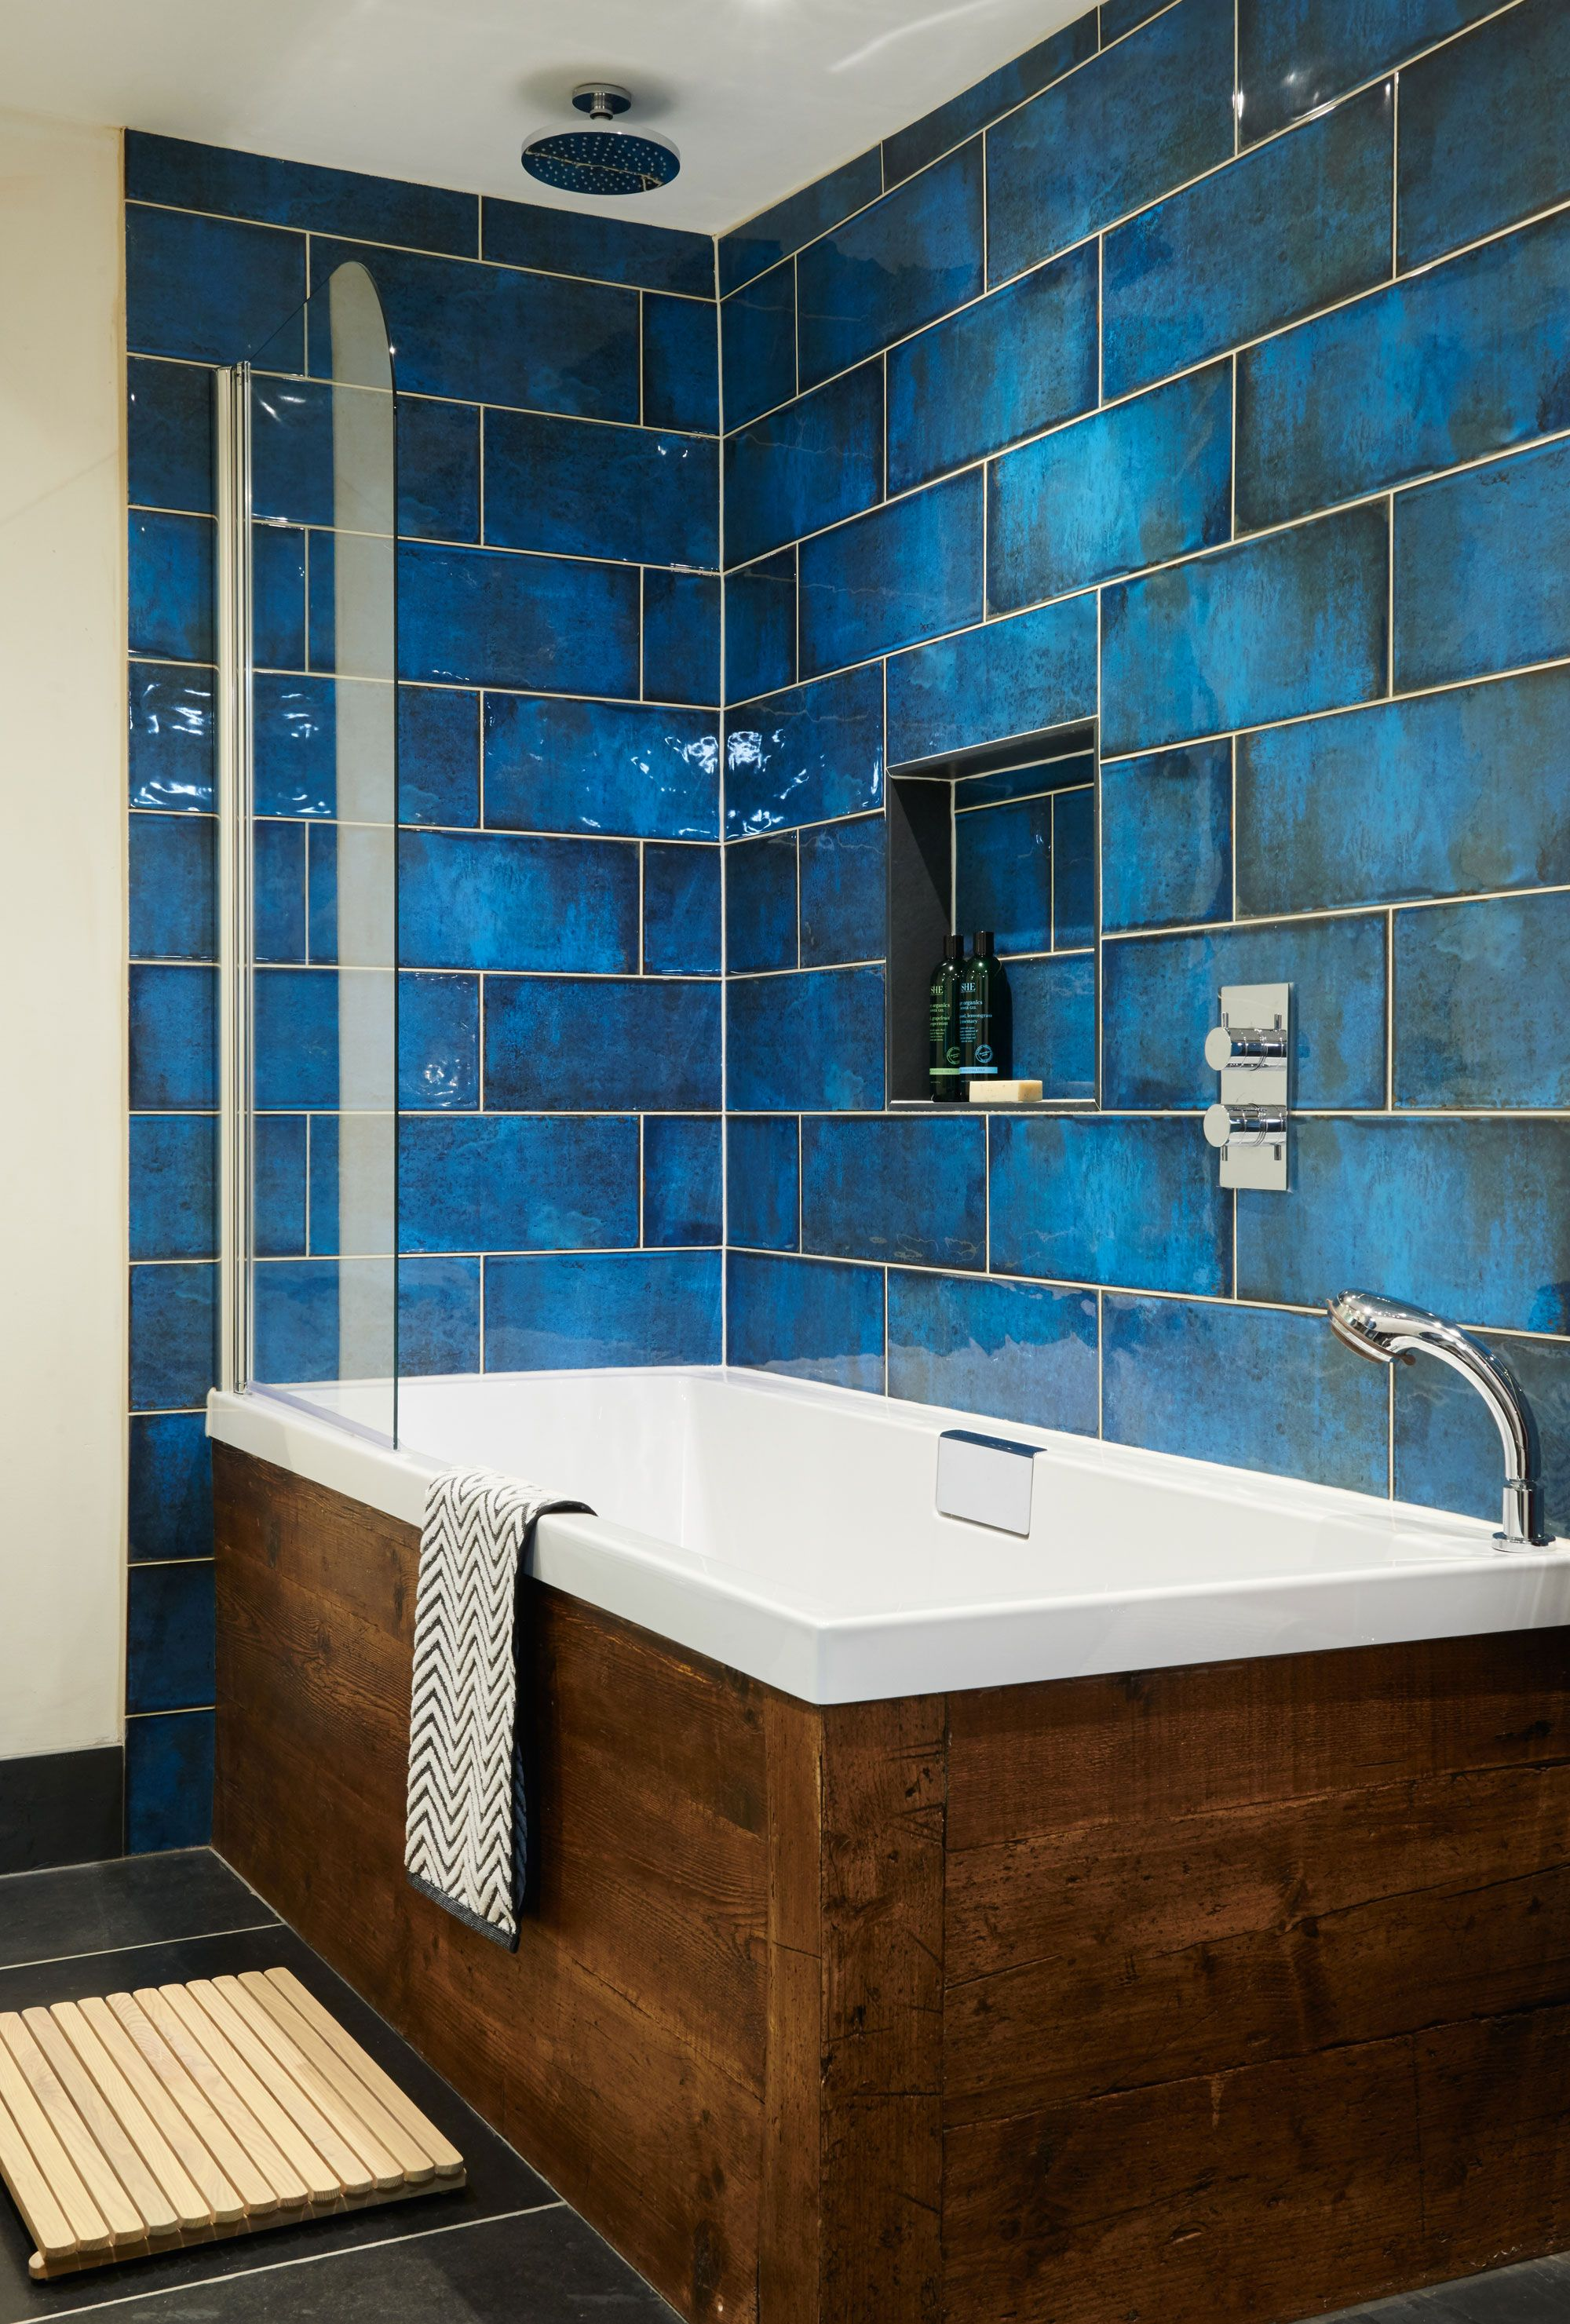 Beau Give Your Walls The The Wow Factor With Intense Blue And Glossy Finish Of  Montblanc Blue From Original Style.